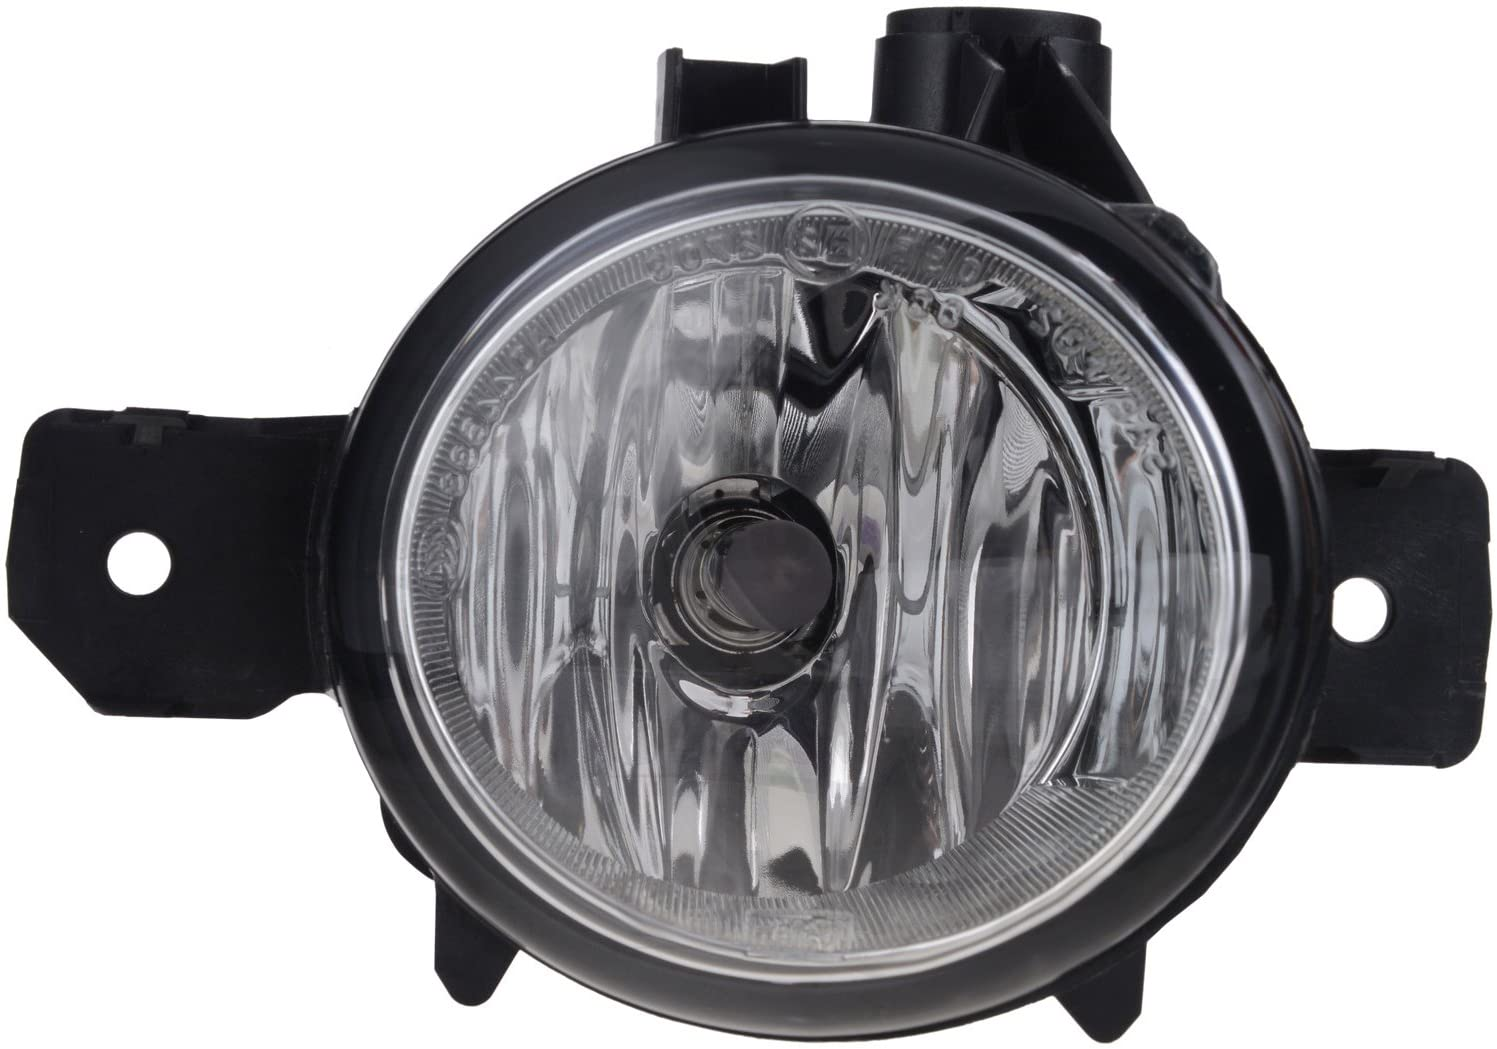 NEW OEM VALEO PASSENGER SIDE FOG LIGHT COMPATIBLE WITH BMW X5 X3 2007-2010 63177184318 43683 BM2593128